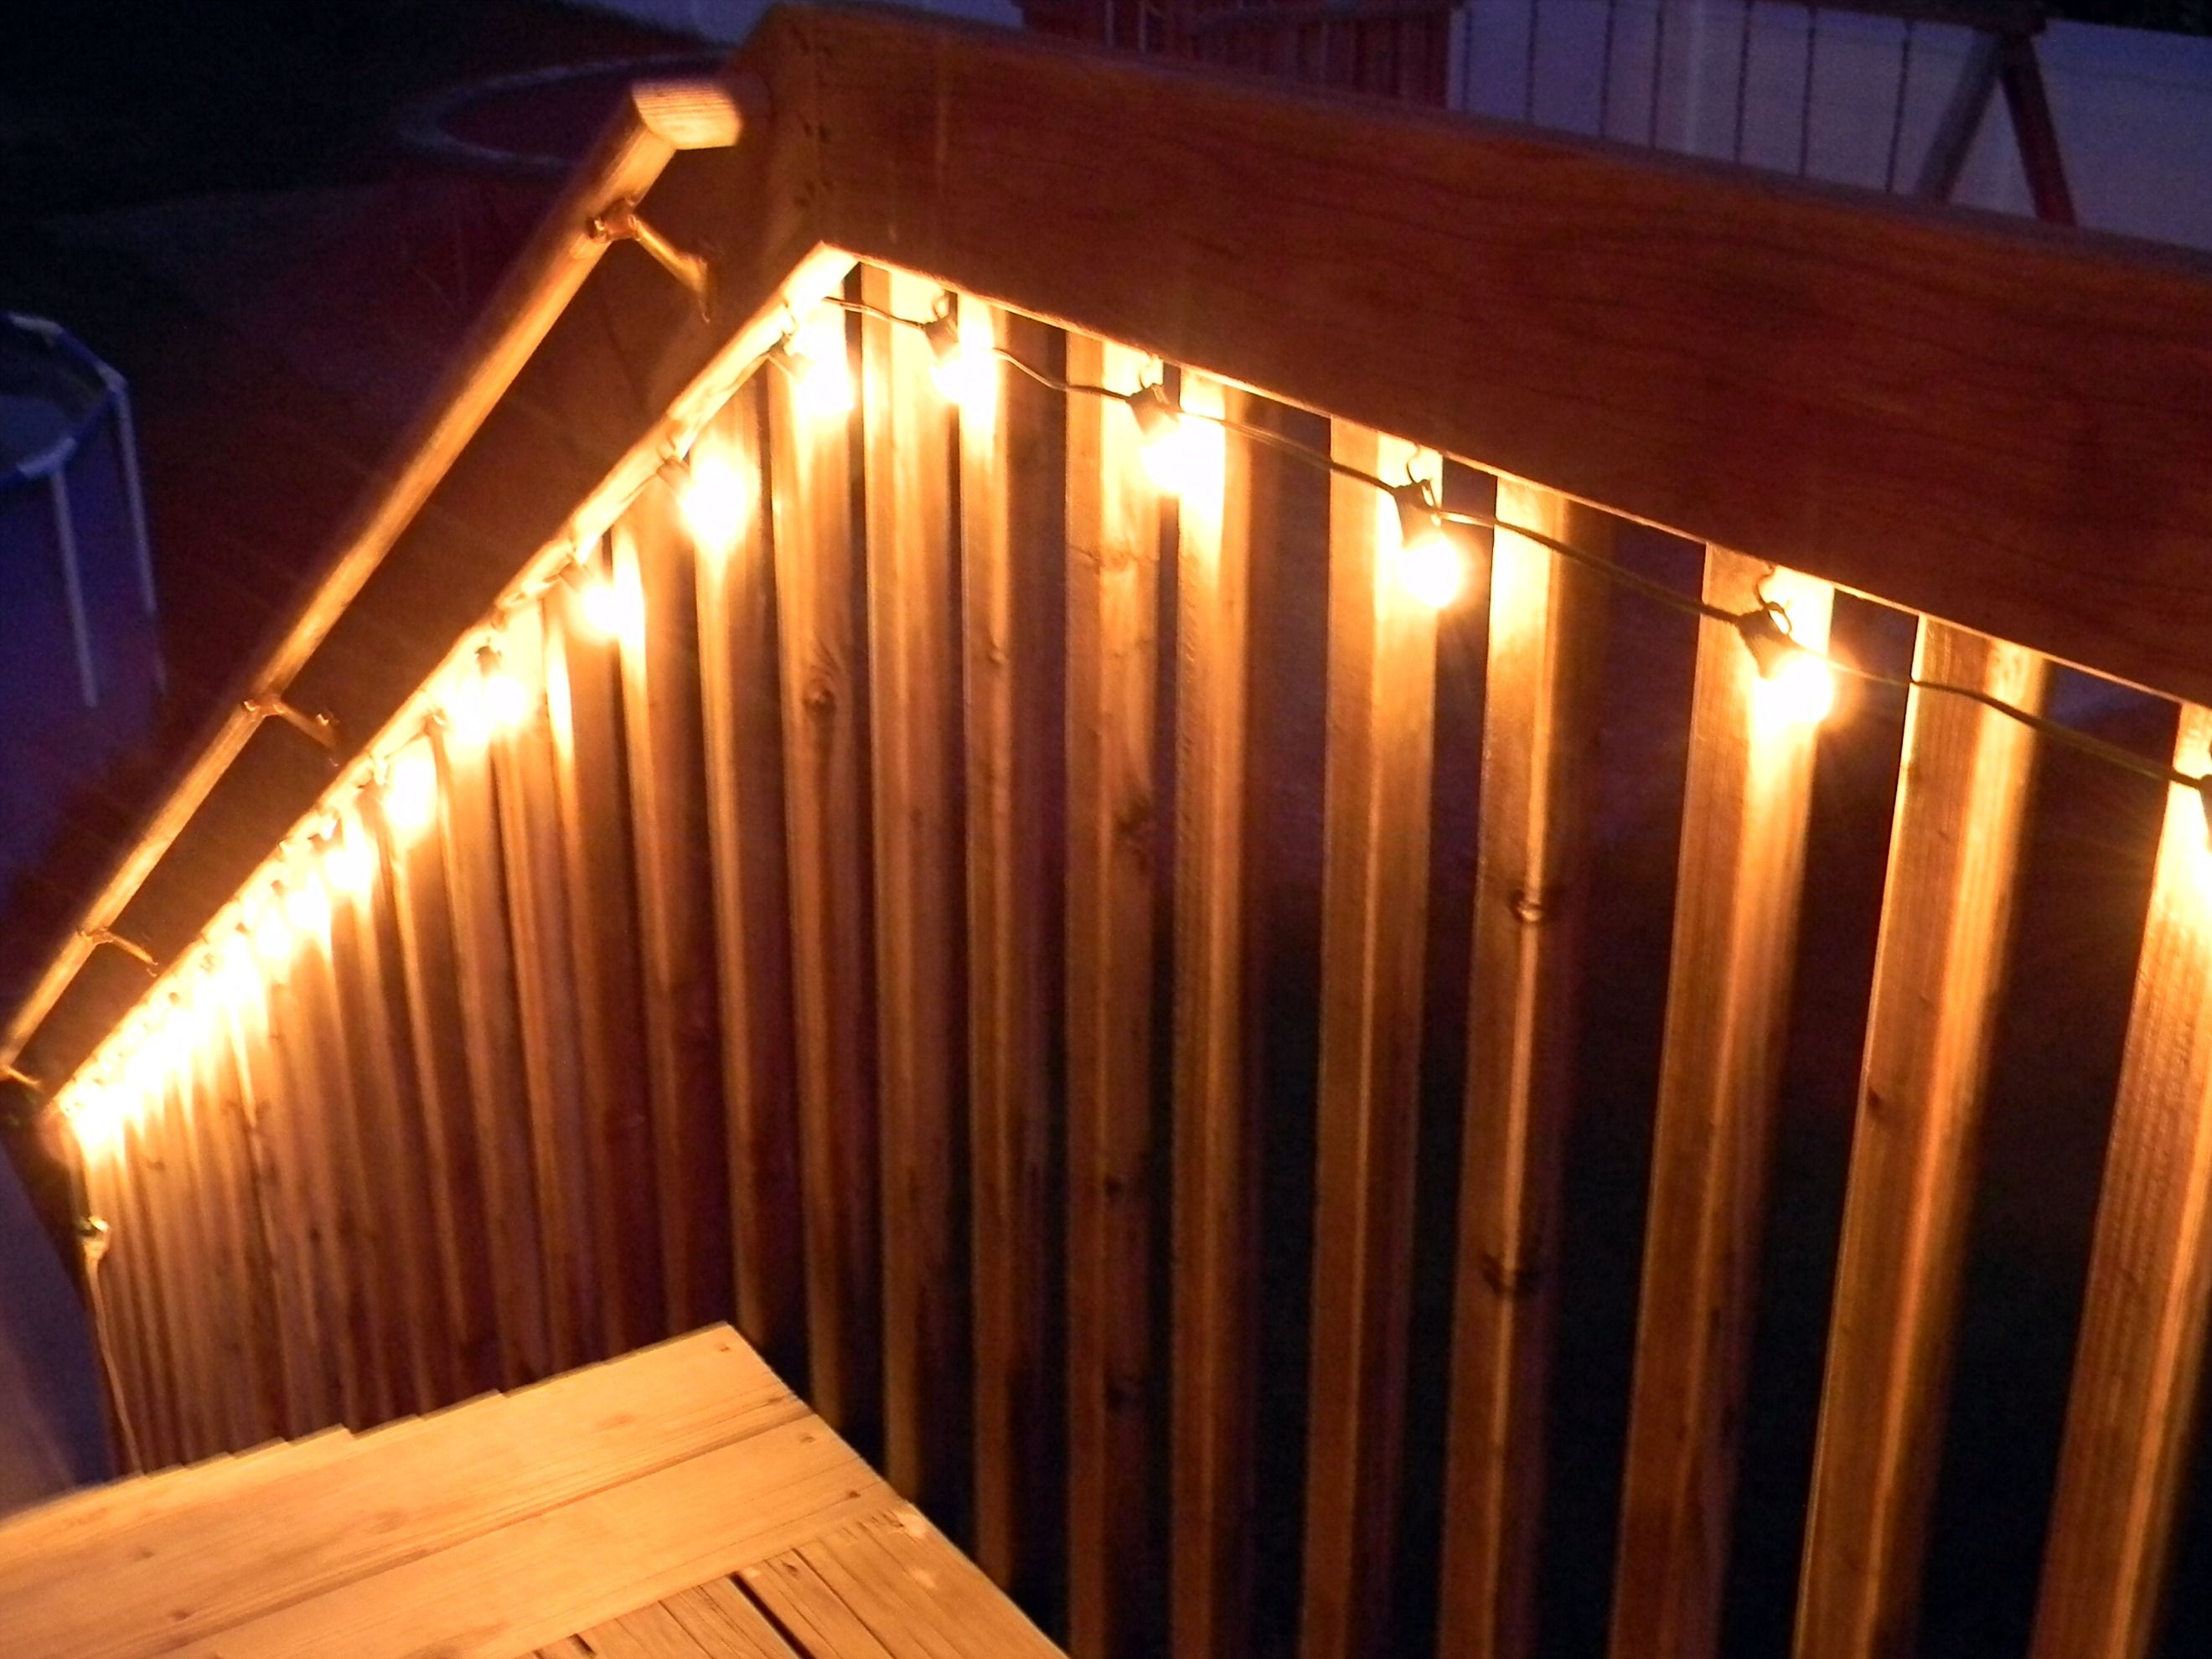 Balcony Lighting Ideas Quick Tip 5 Lighting The Deck Patios Decks And Pools